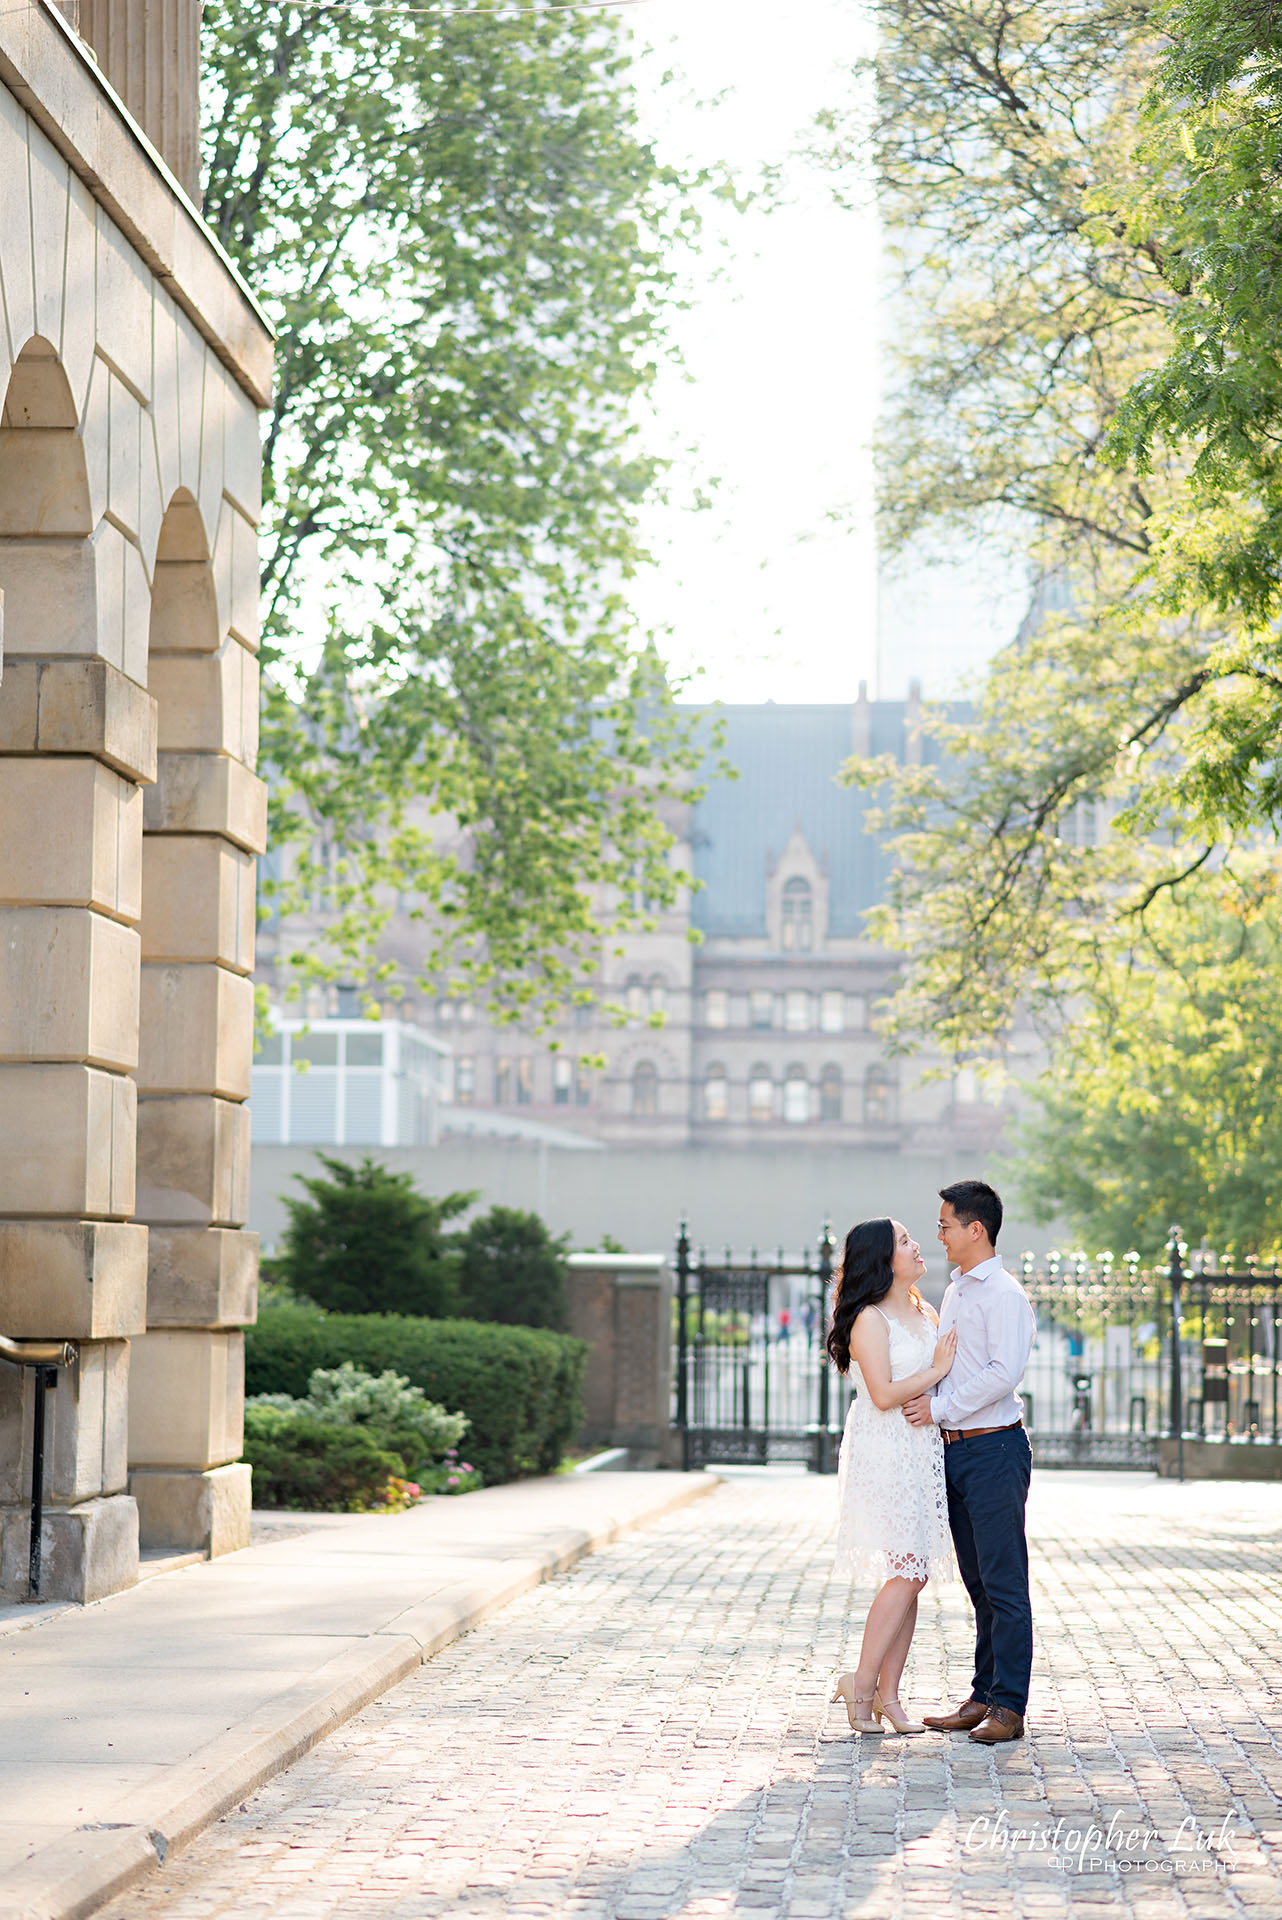 Christopher Luk Wedding Photographer Osgoode Hall Toronto Bride Groom Cobblestone Hug Holding Each Other Intimate Snuggle Portrait Natural Candid Photojournalistic